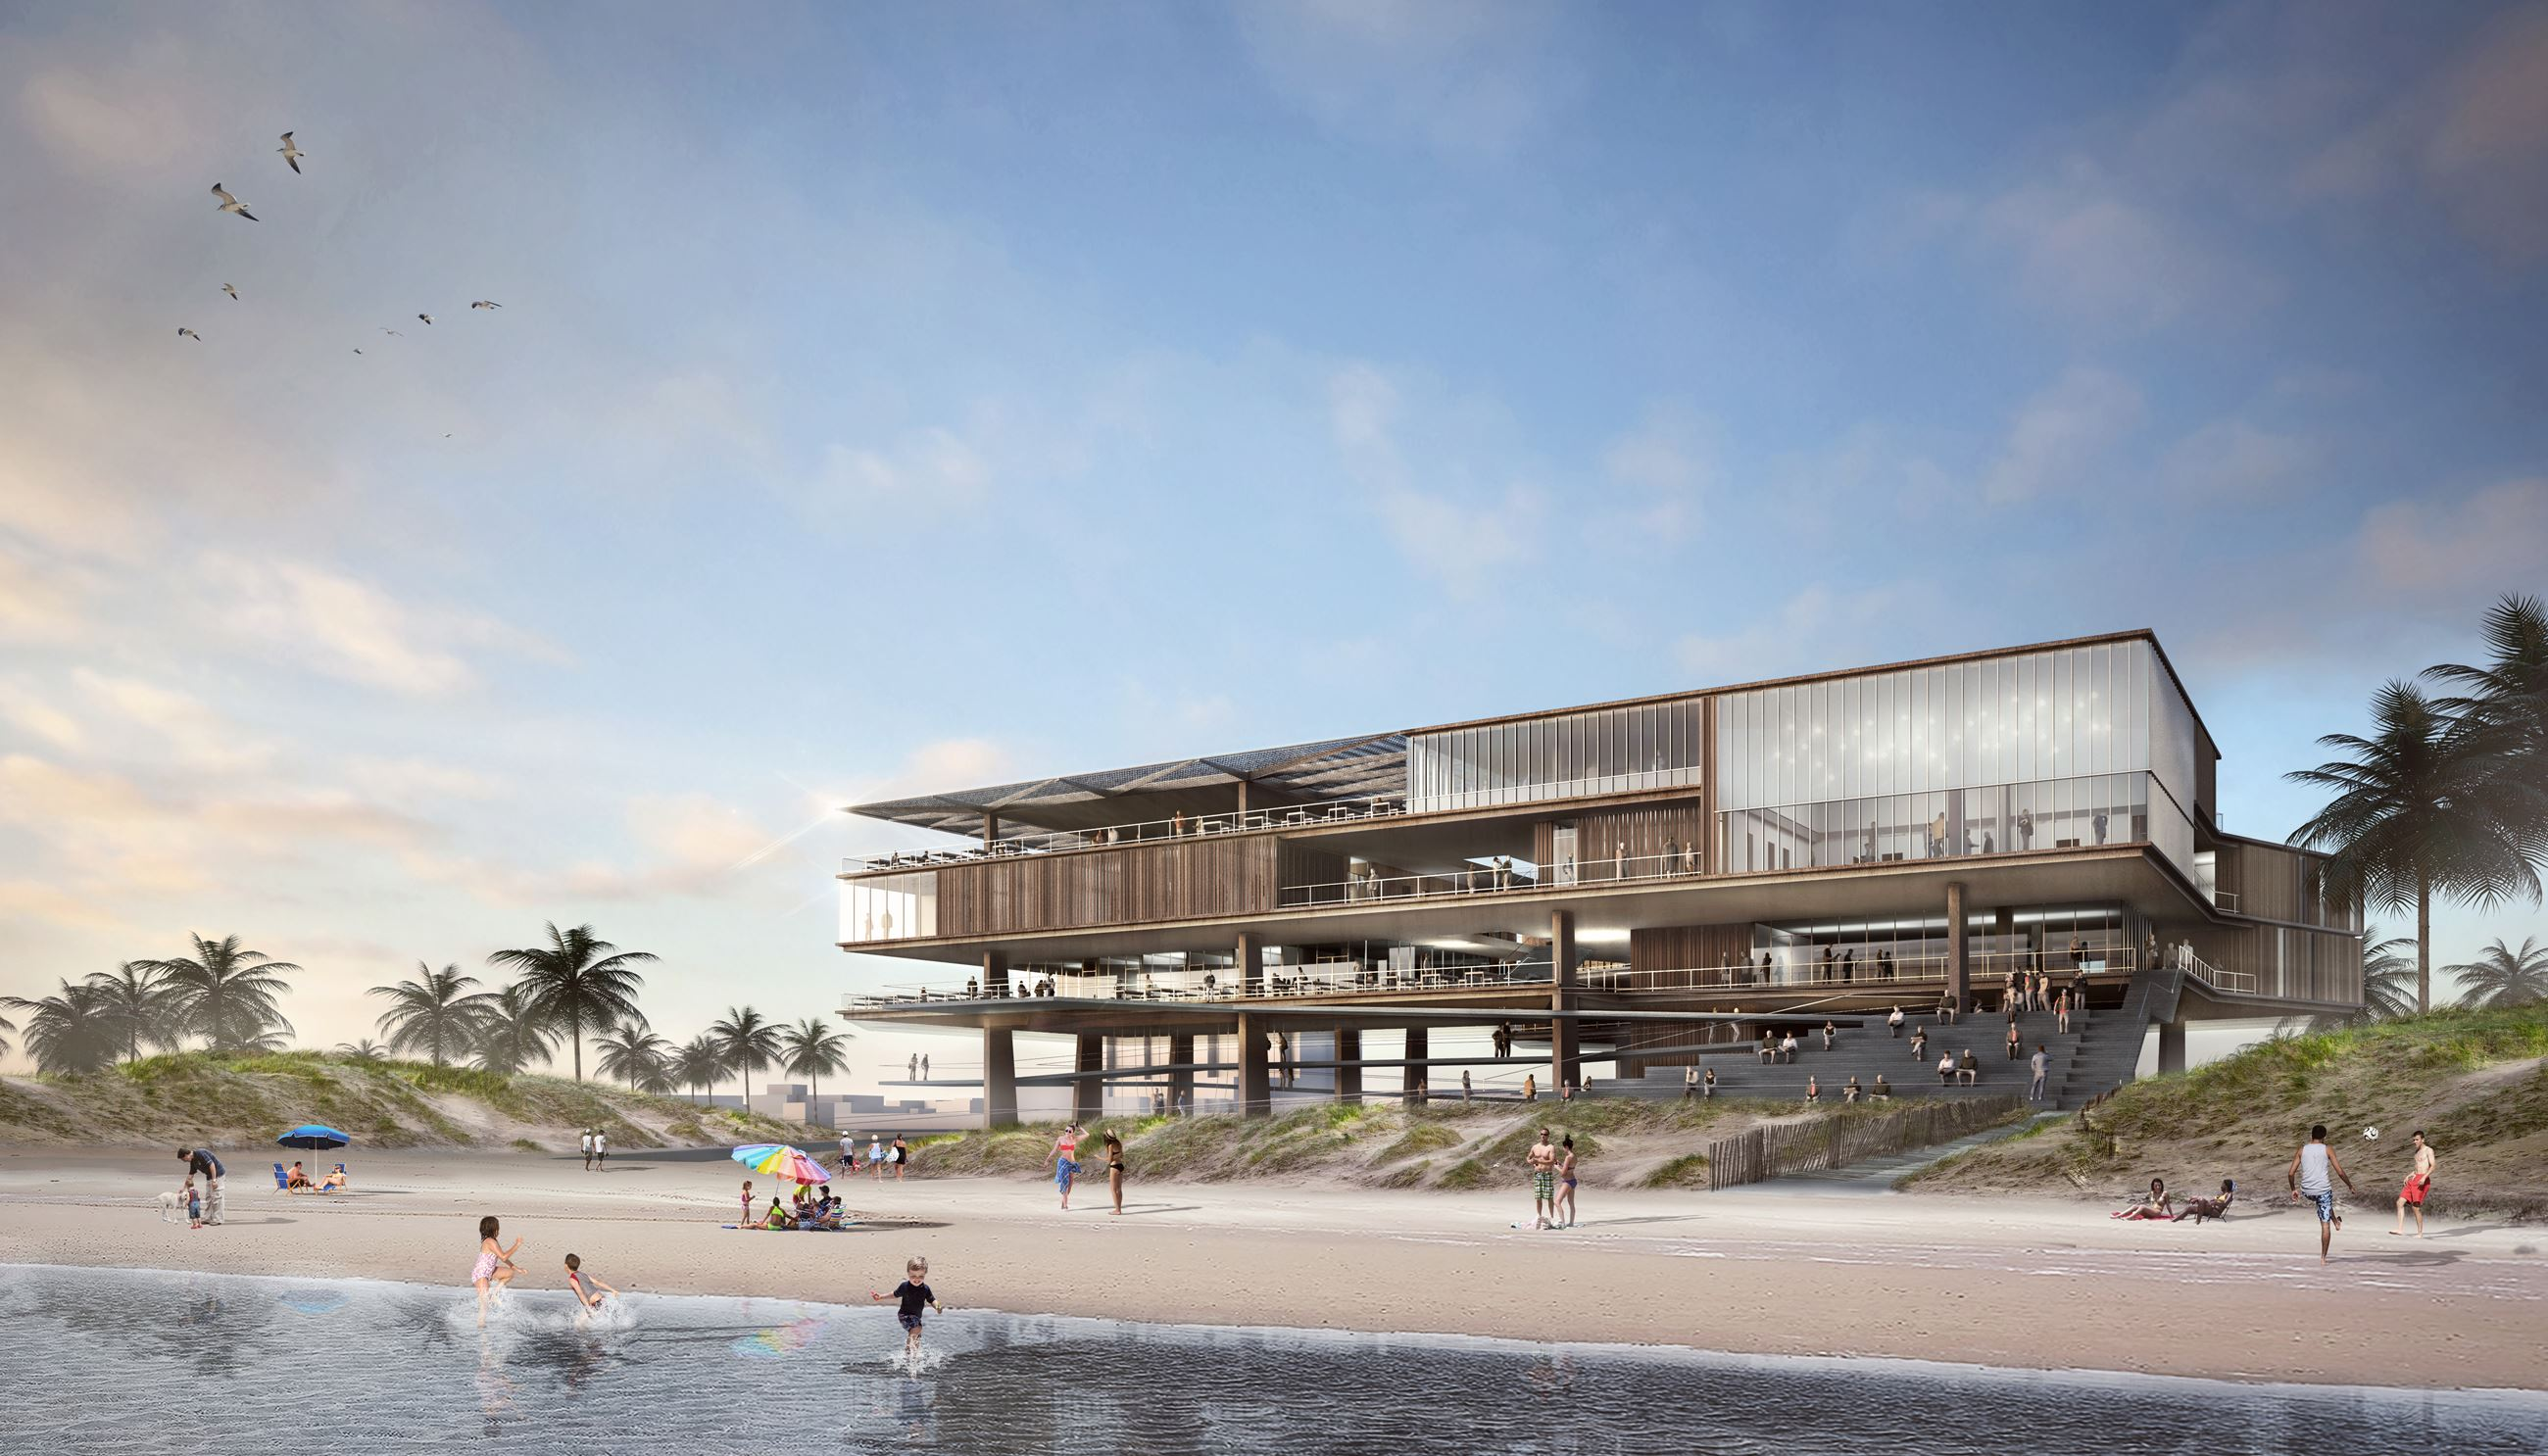 Beach view of conceptual new pavilion 03272018